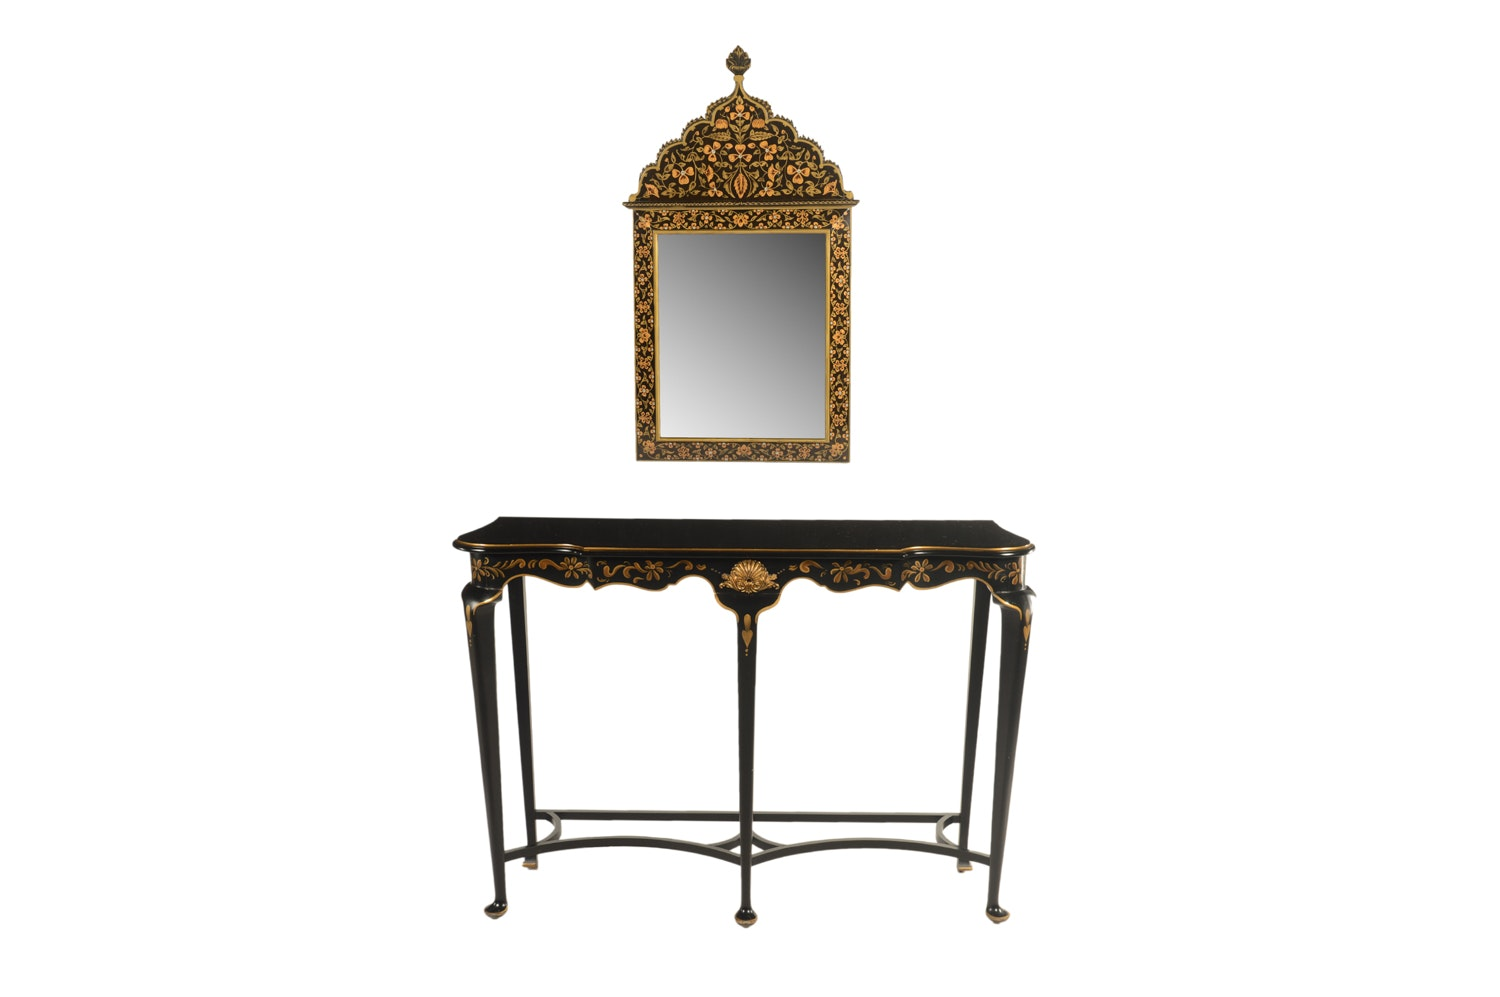 Contemporary Black and Gold Hand Painted Wood Console Table and Mirror